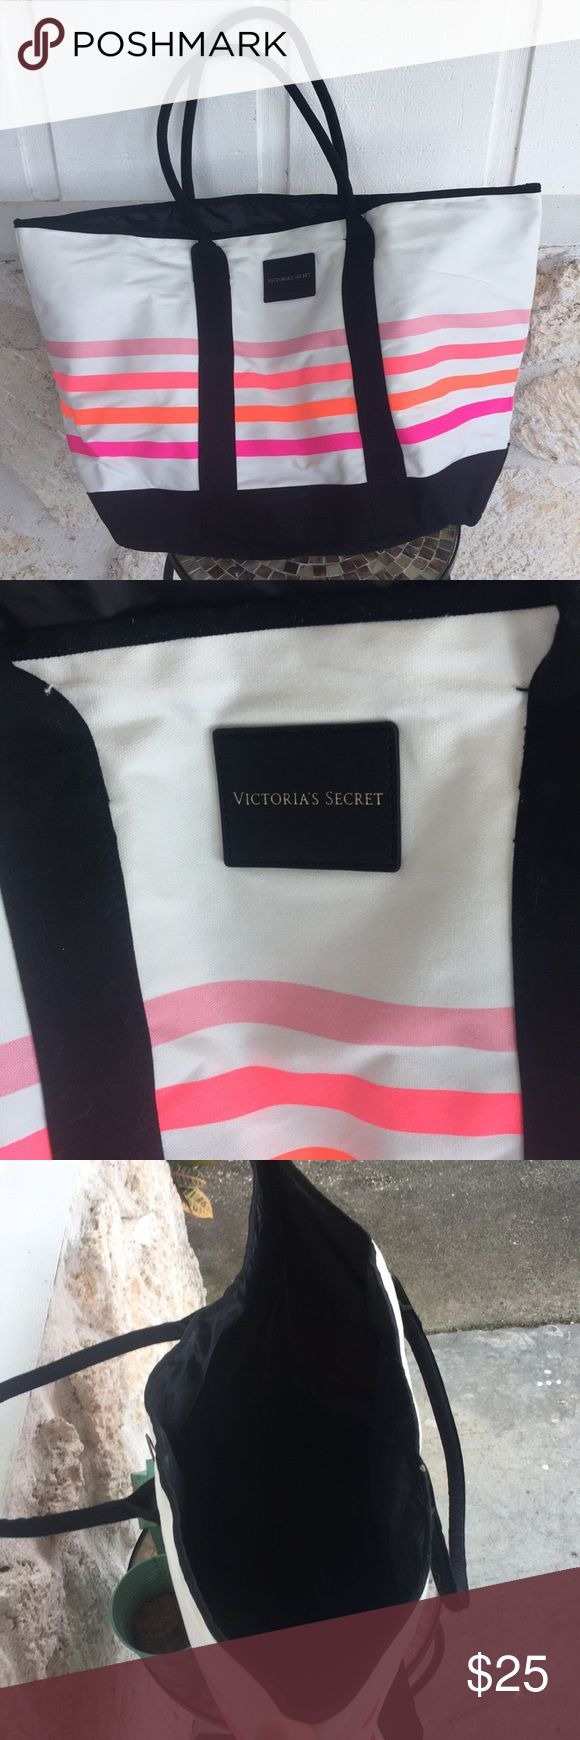 "🆕Victoria's Secret "" PINK"" Large tote NWOT ✅I ship same or next day ✅Bundle for discount PINK Victoria's Secret Bags Totes"